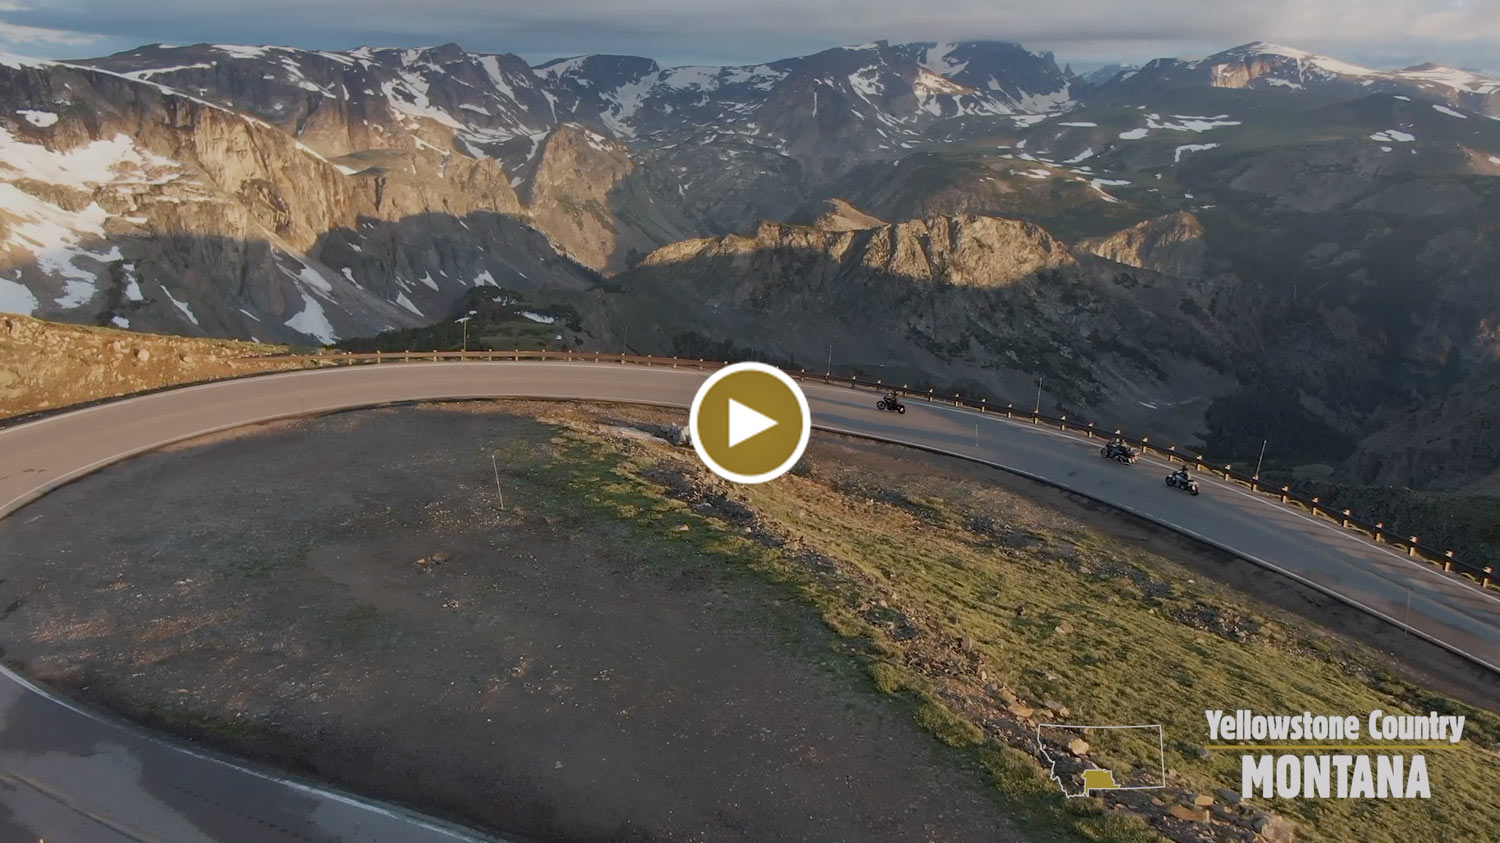 Summer in Yellowstone Country Montana and Yellowstone National Park Video